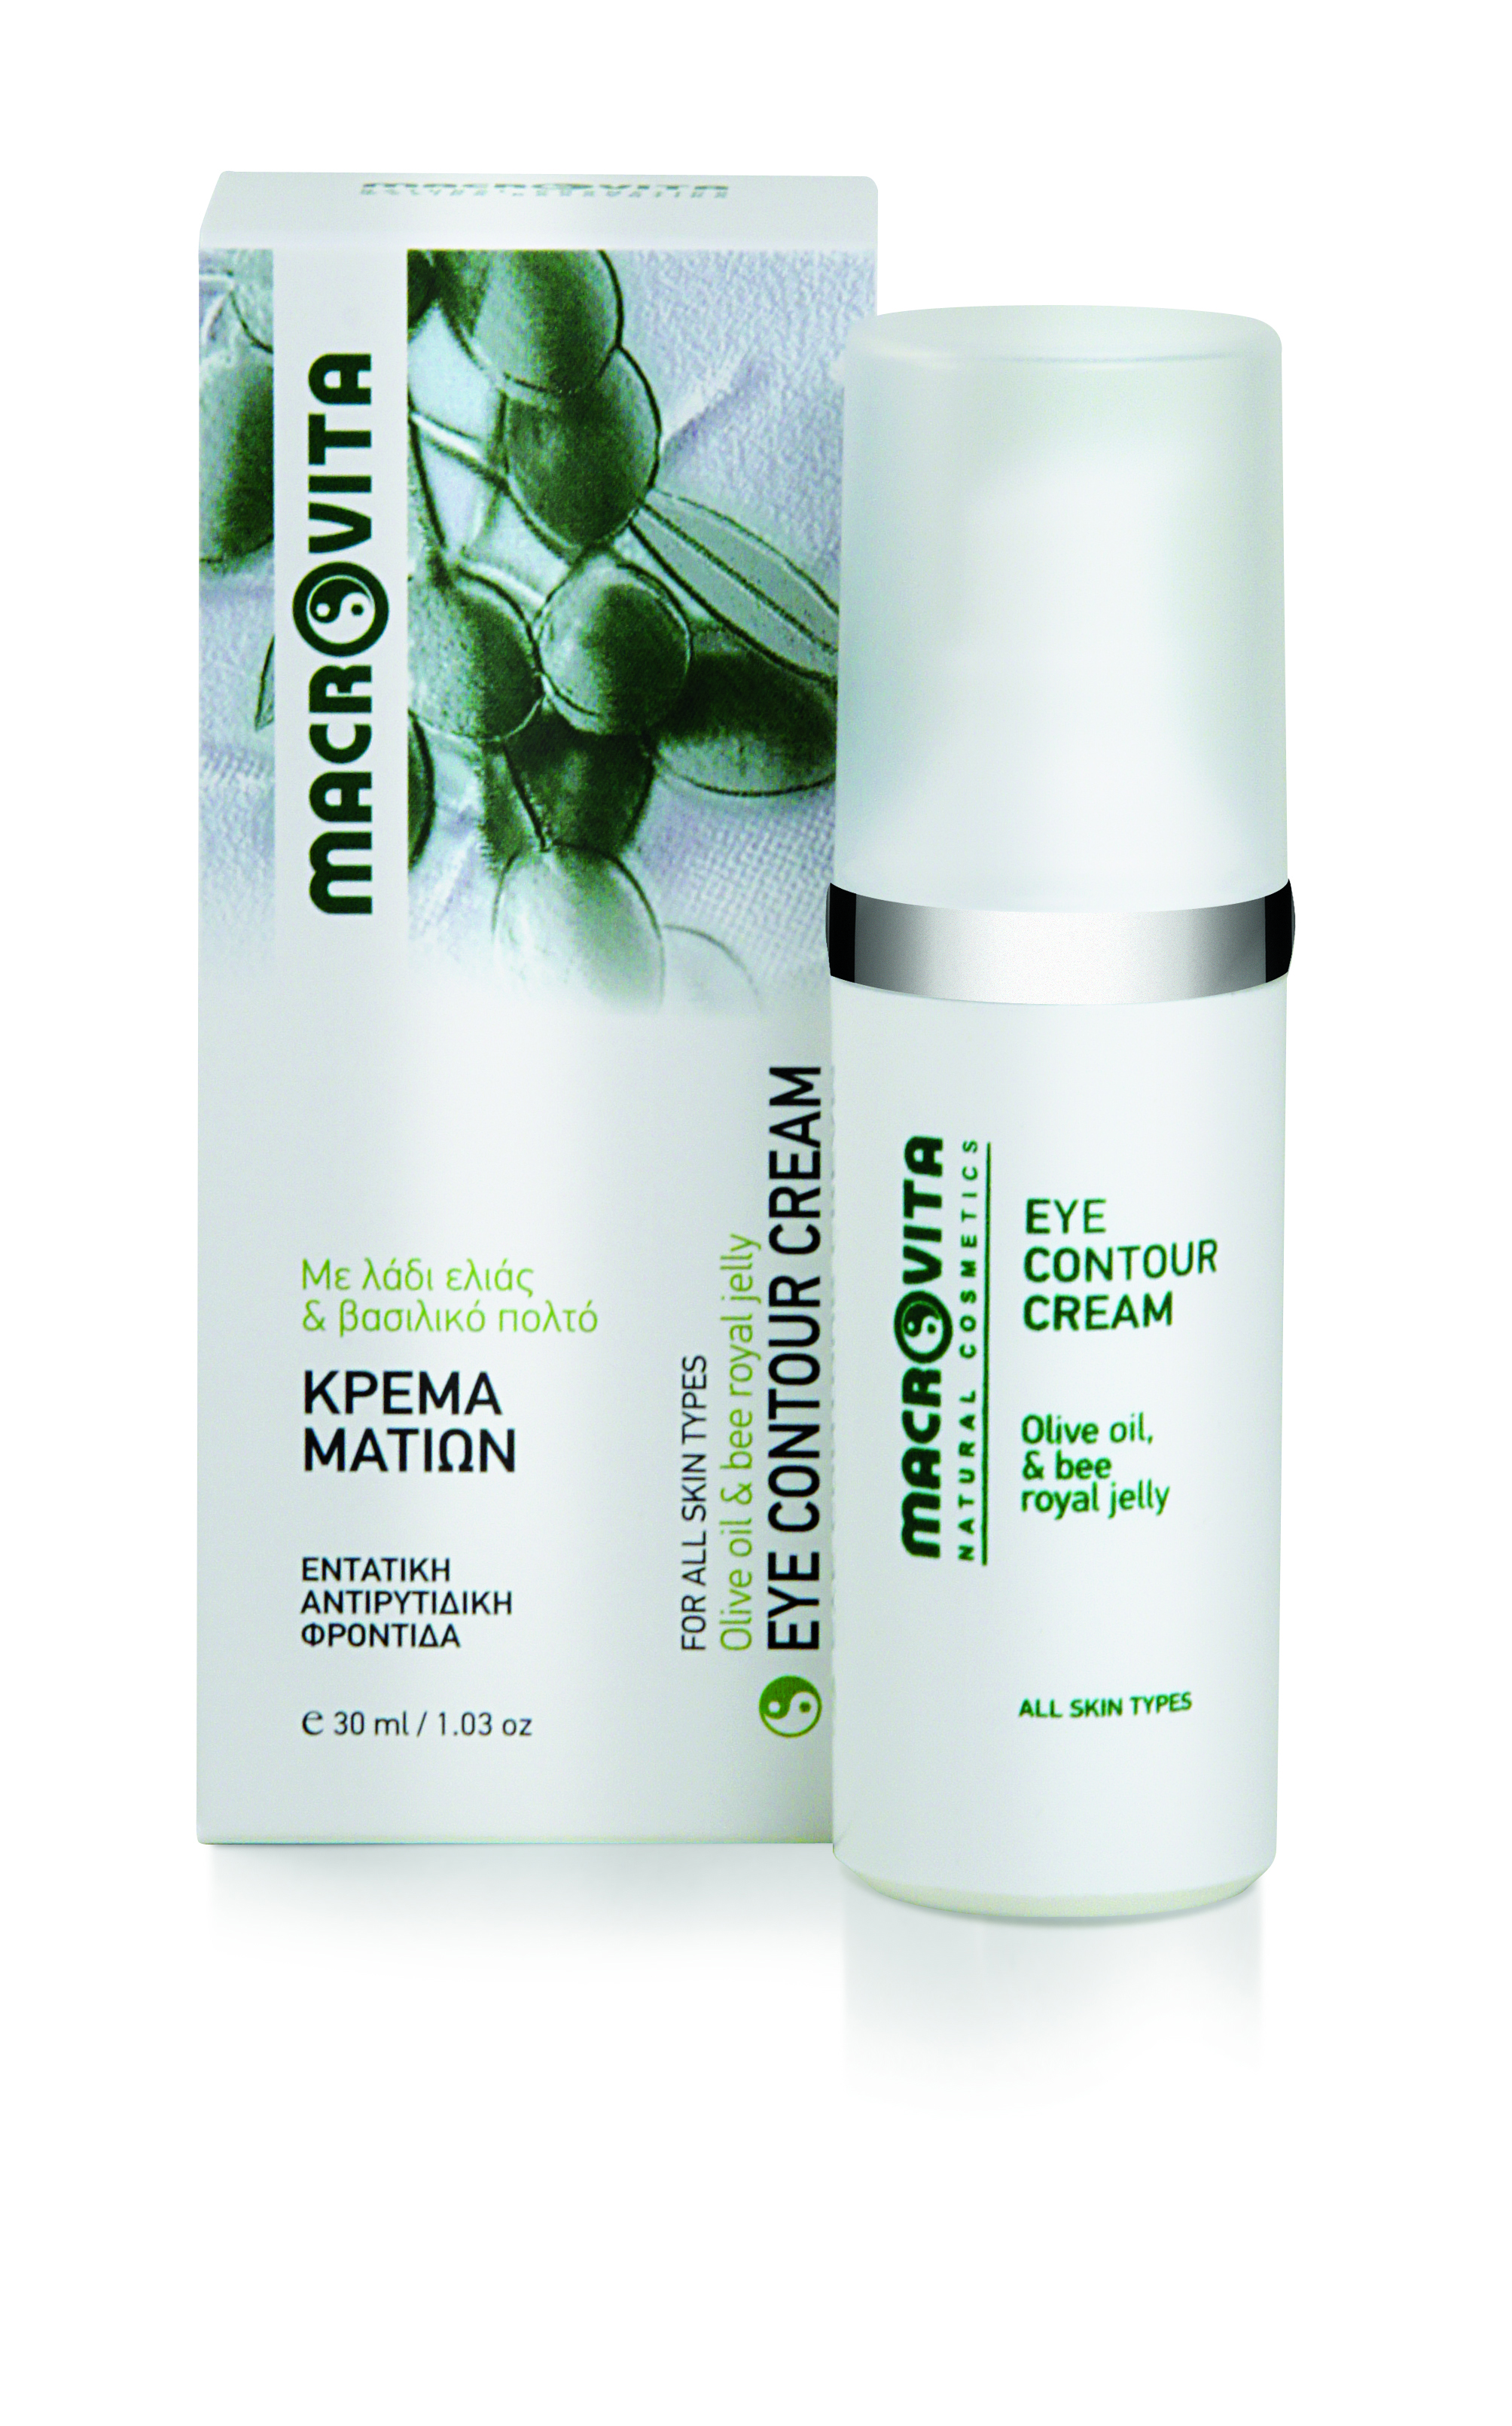 Macrovita Olive Oil & Bee Royal Jelly Eye Contour Cream Κρέμα Ματιών 30ml